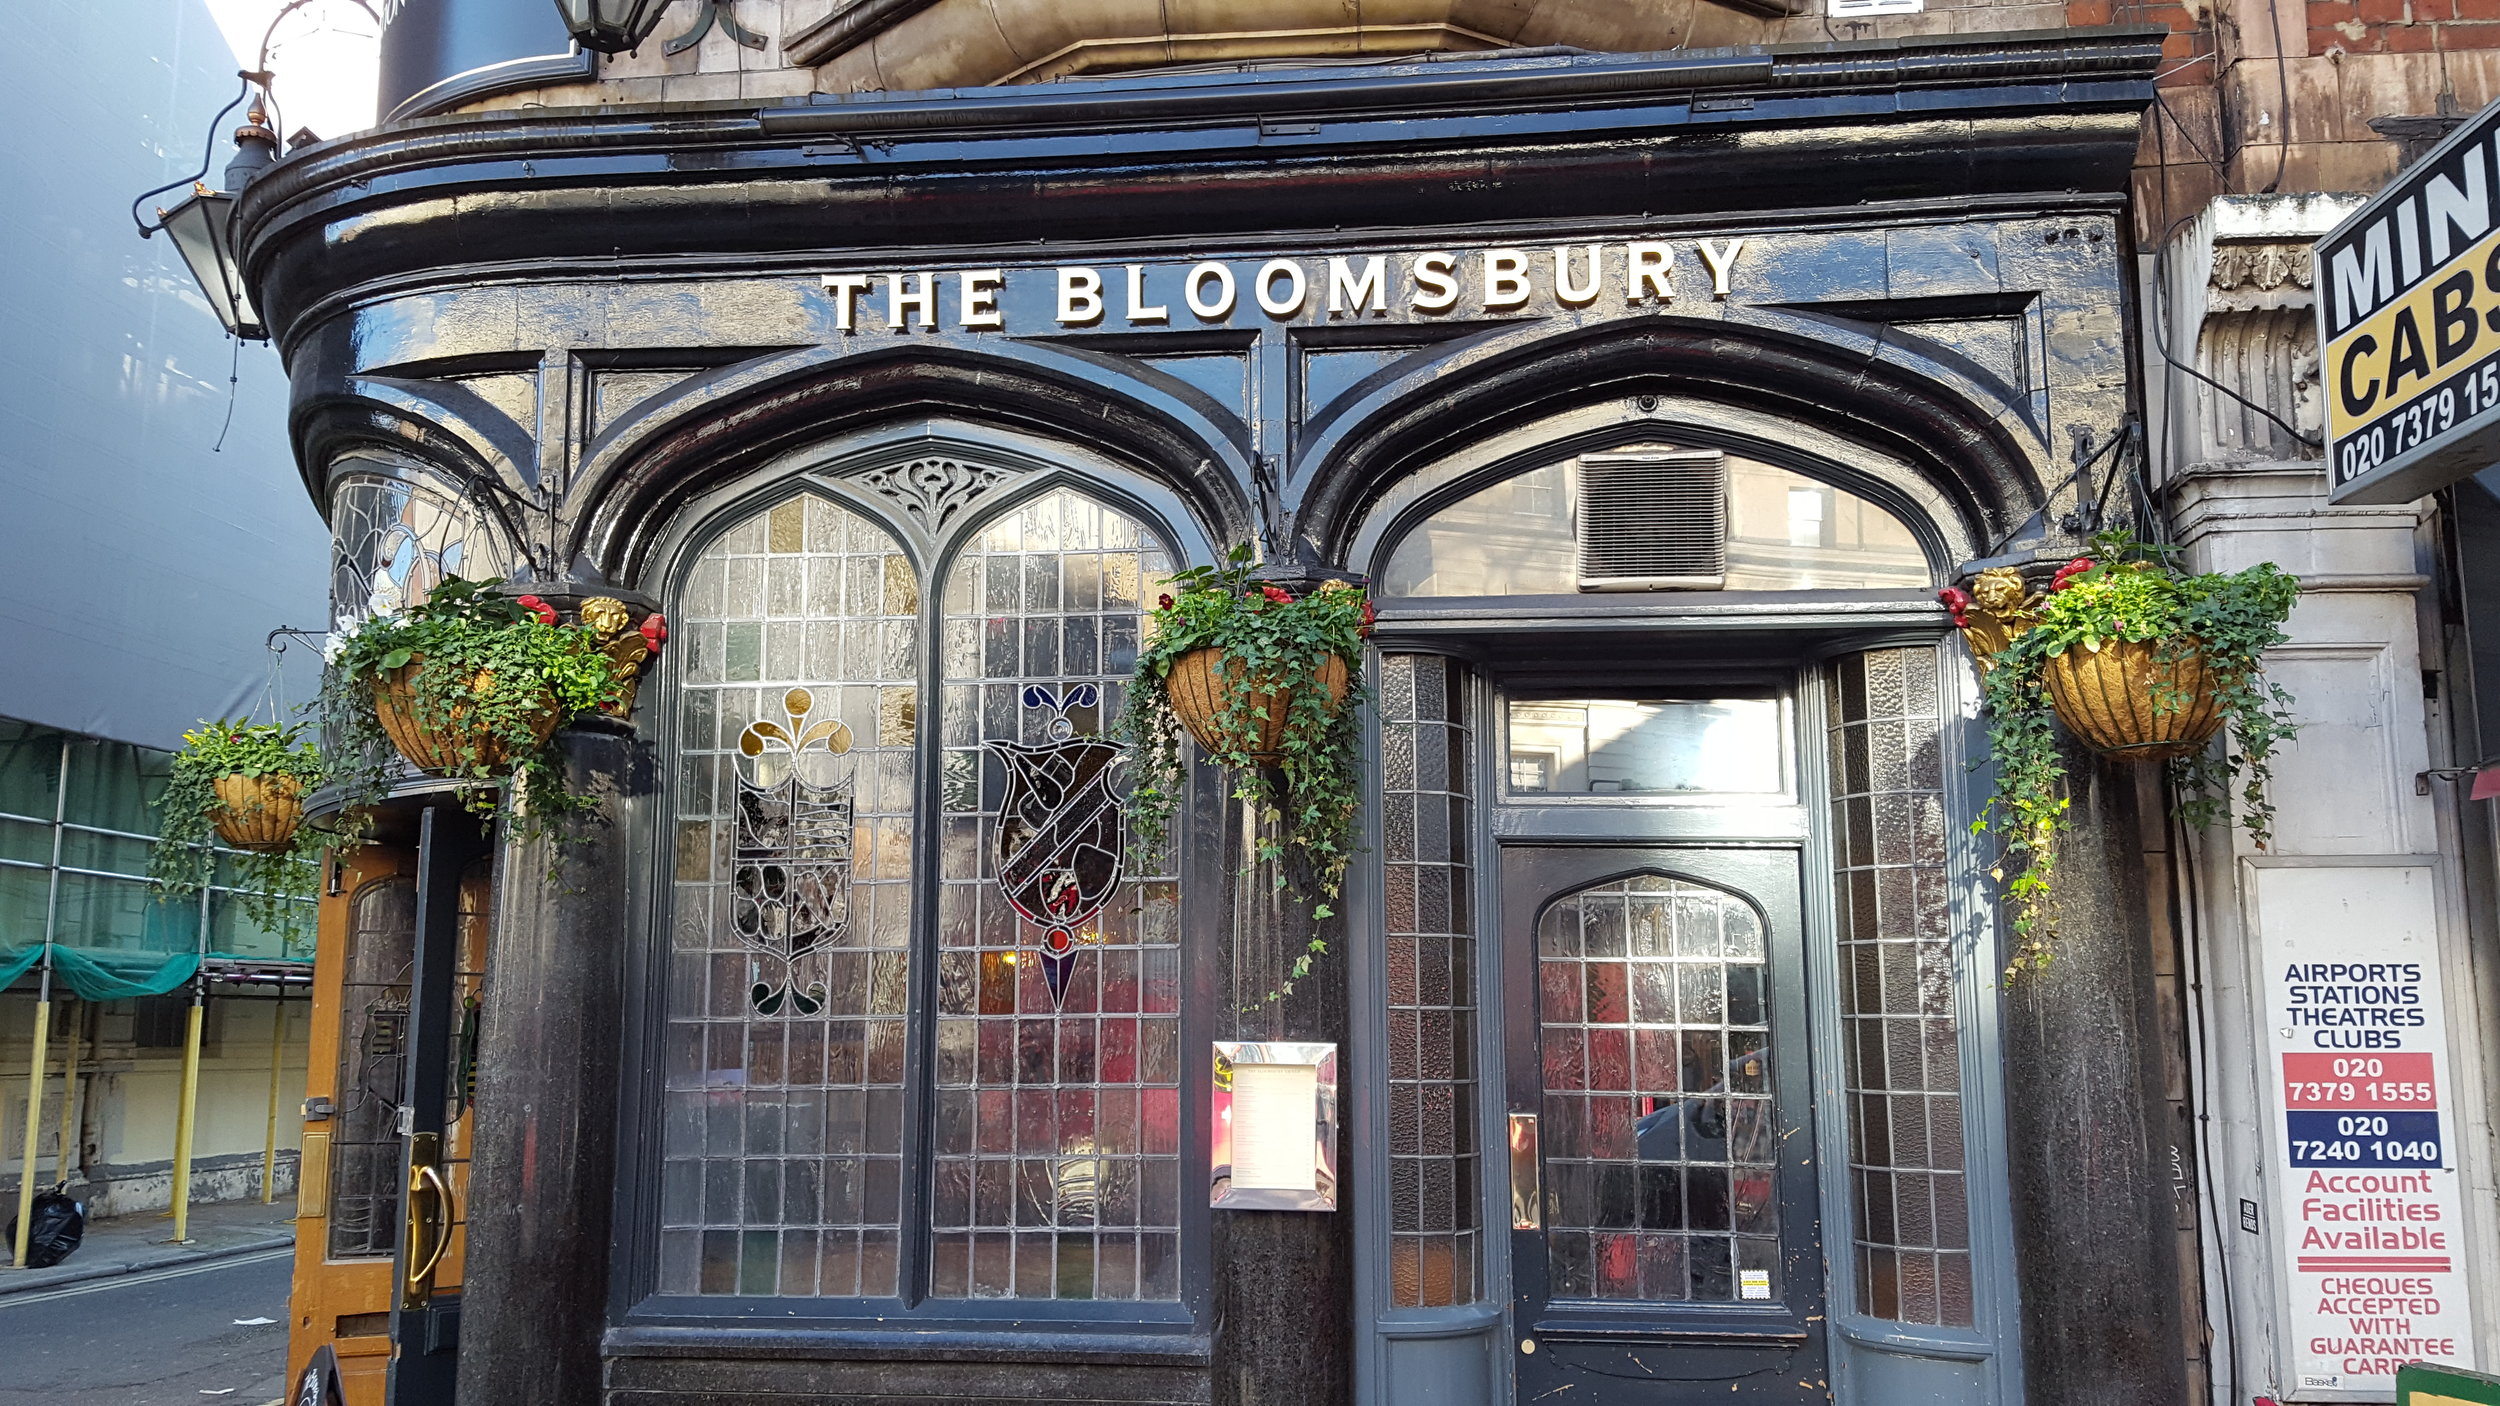 After all the sight-seeing, it's time for a well-earned pint with the chatty locals at the Bloomsbury tavern. Oh the characters we'll meet! Do you fancy a bag of salt and vinegar crisps with your pint?